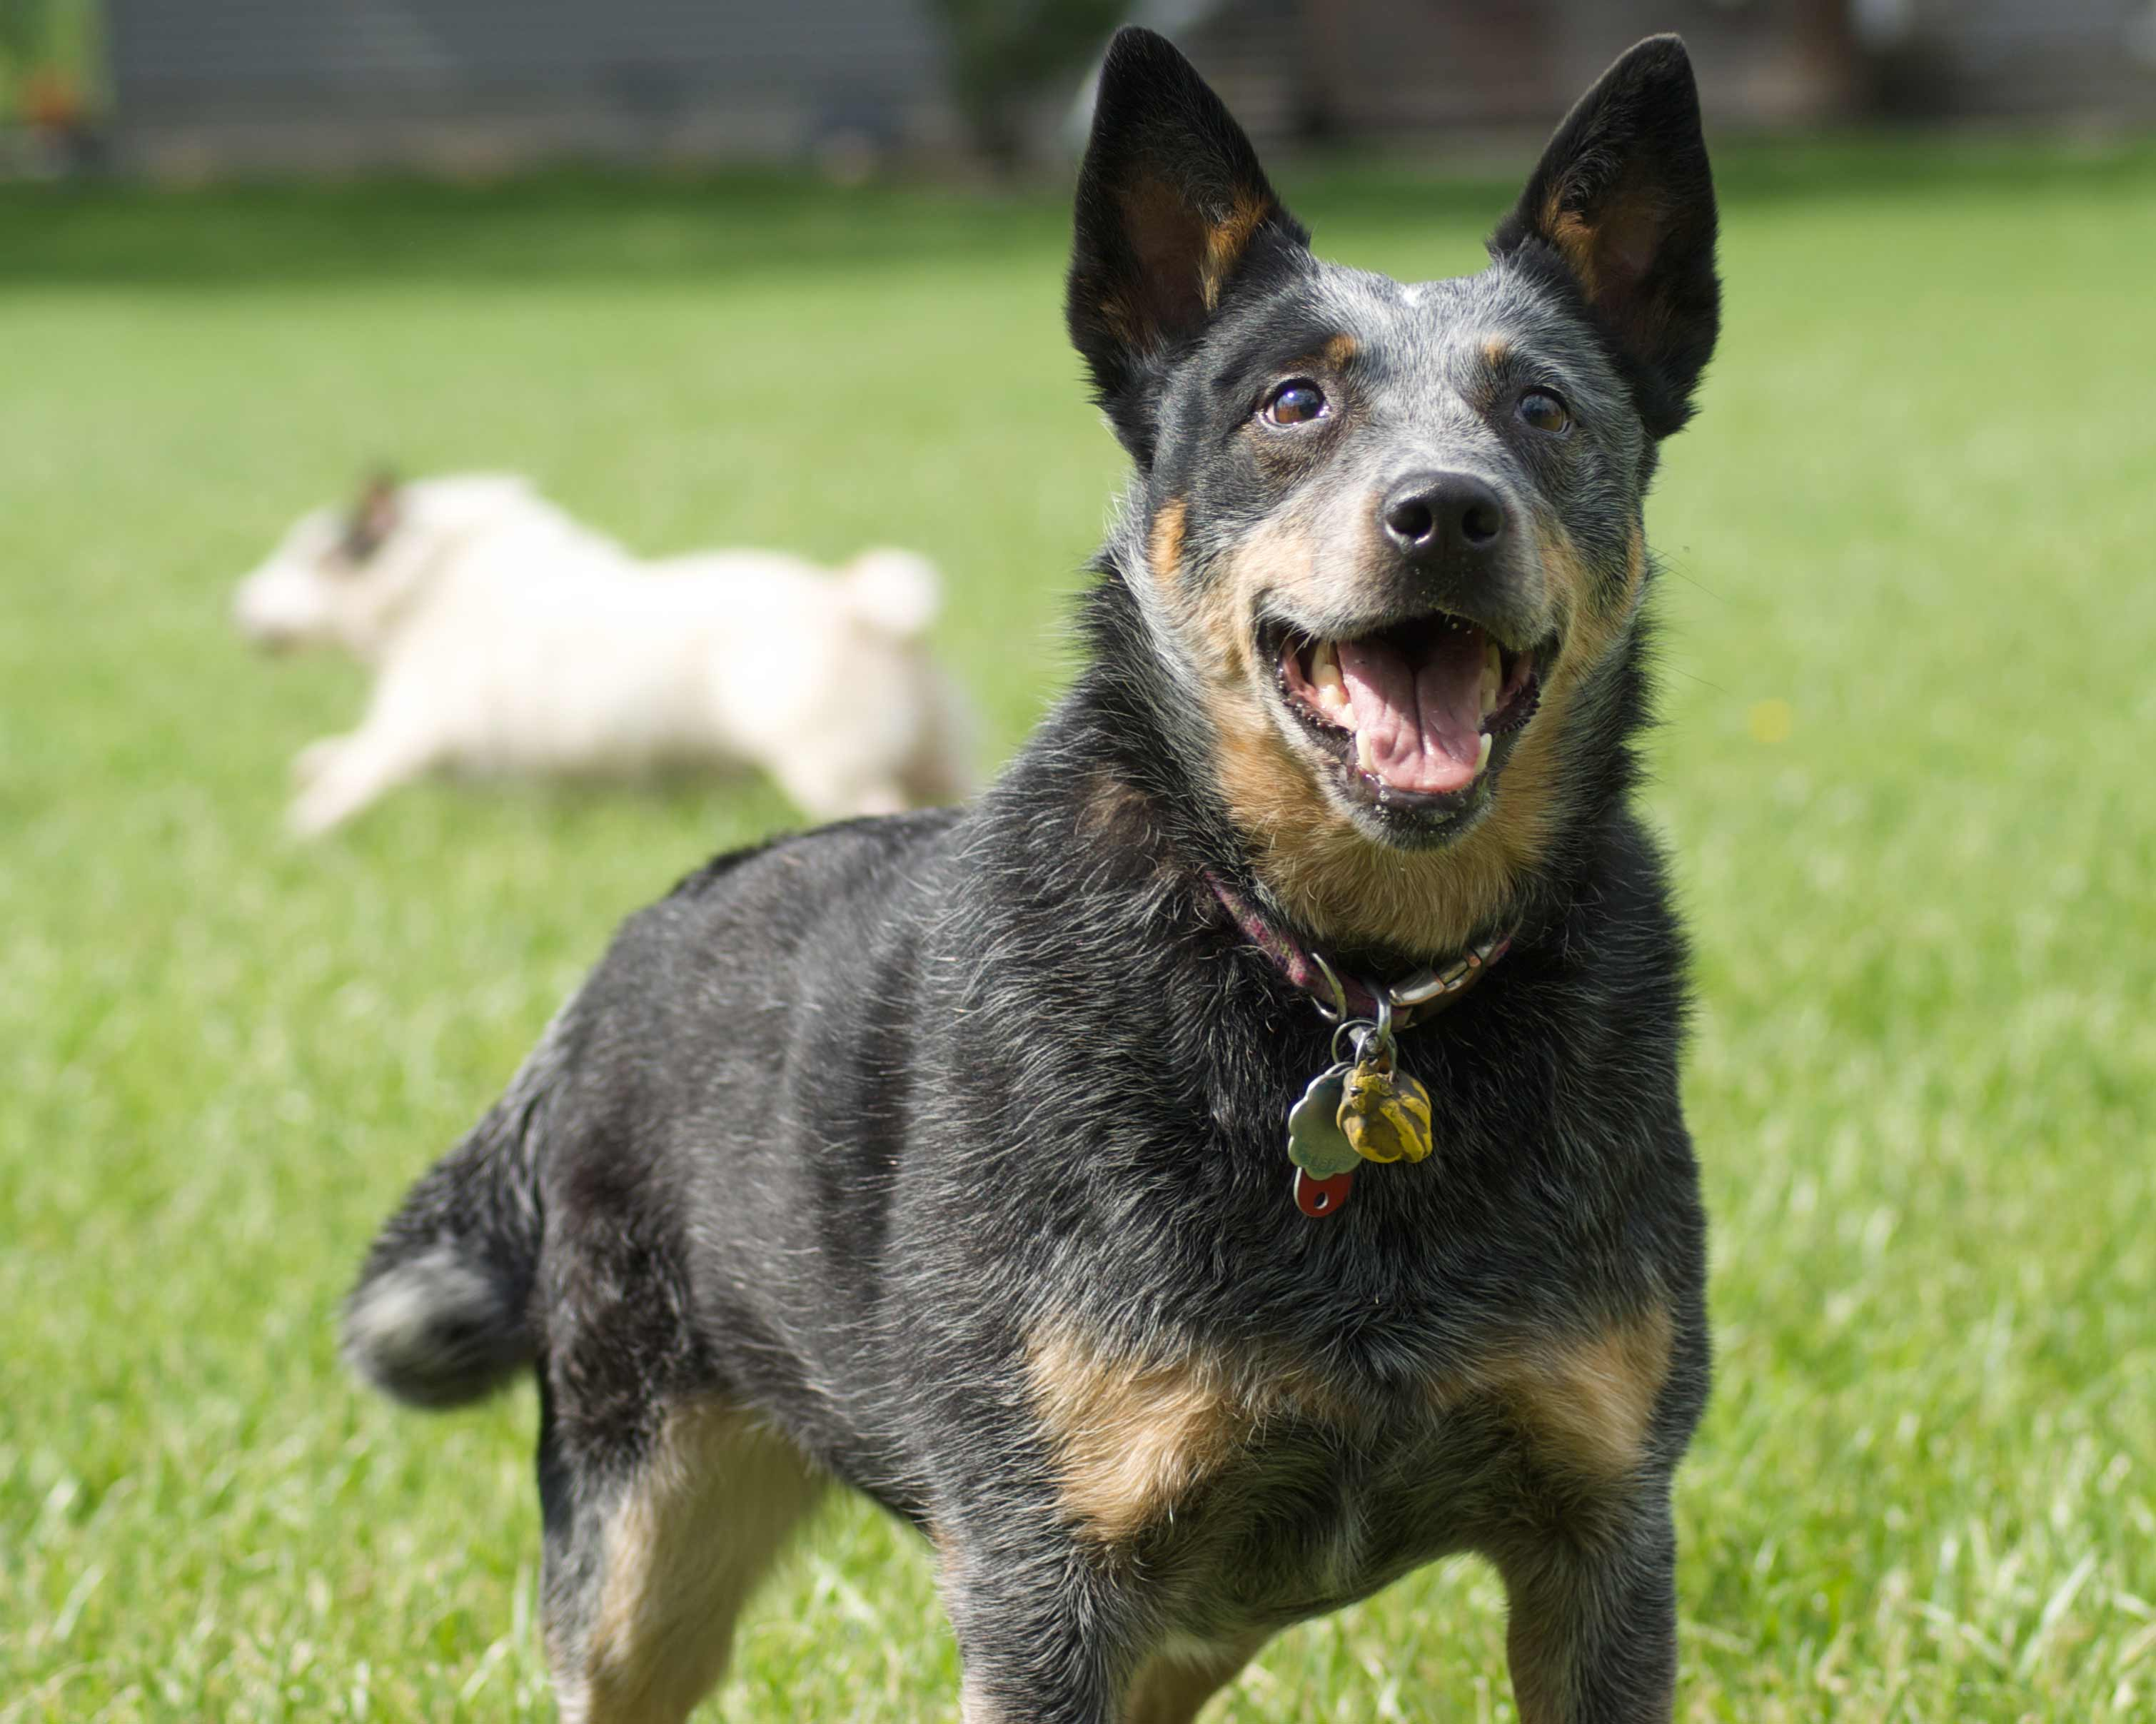 Australian Cattle Dog Breed » Information, Pictures, & More